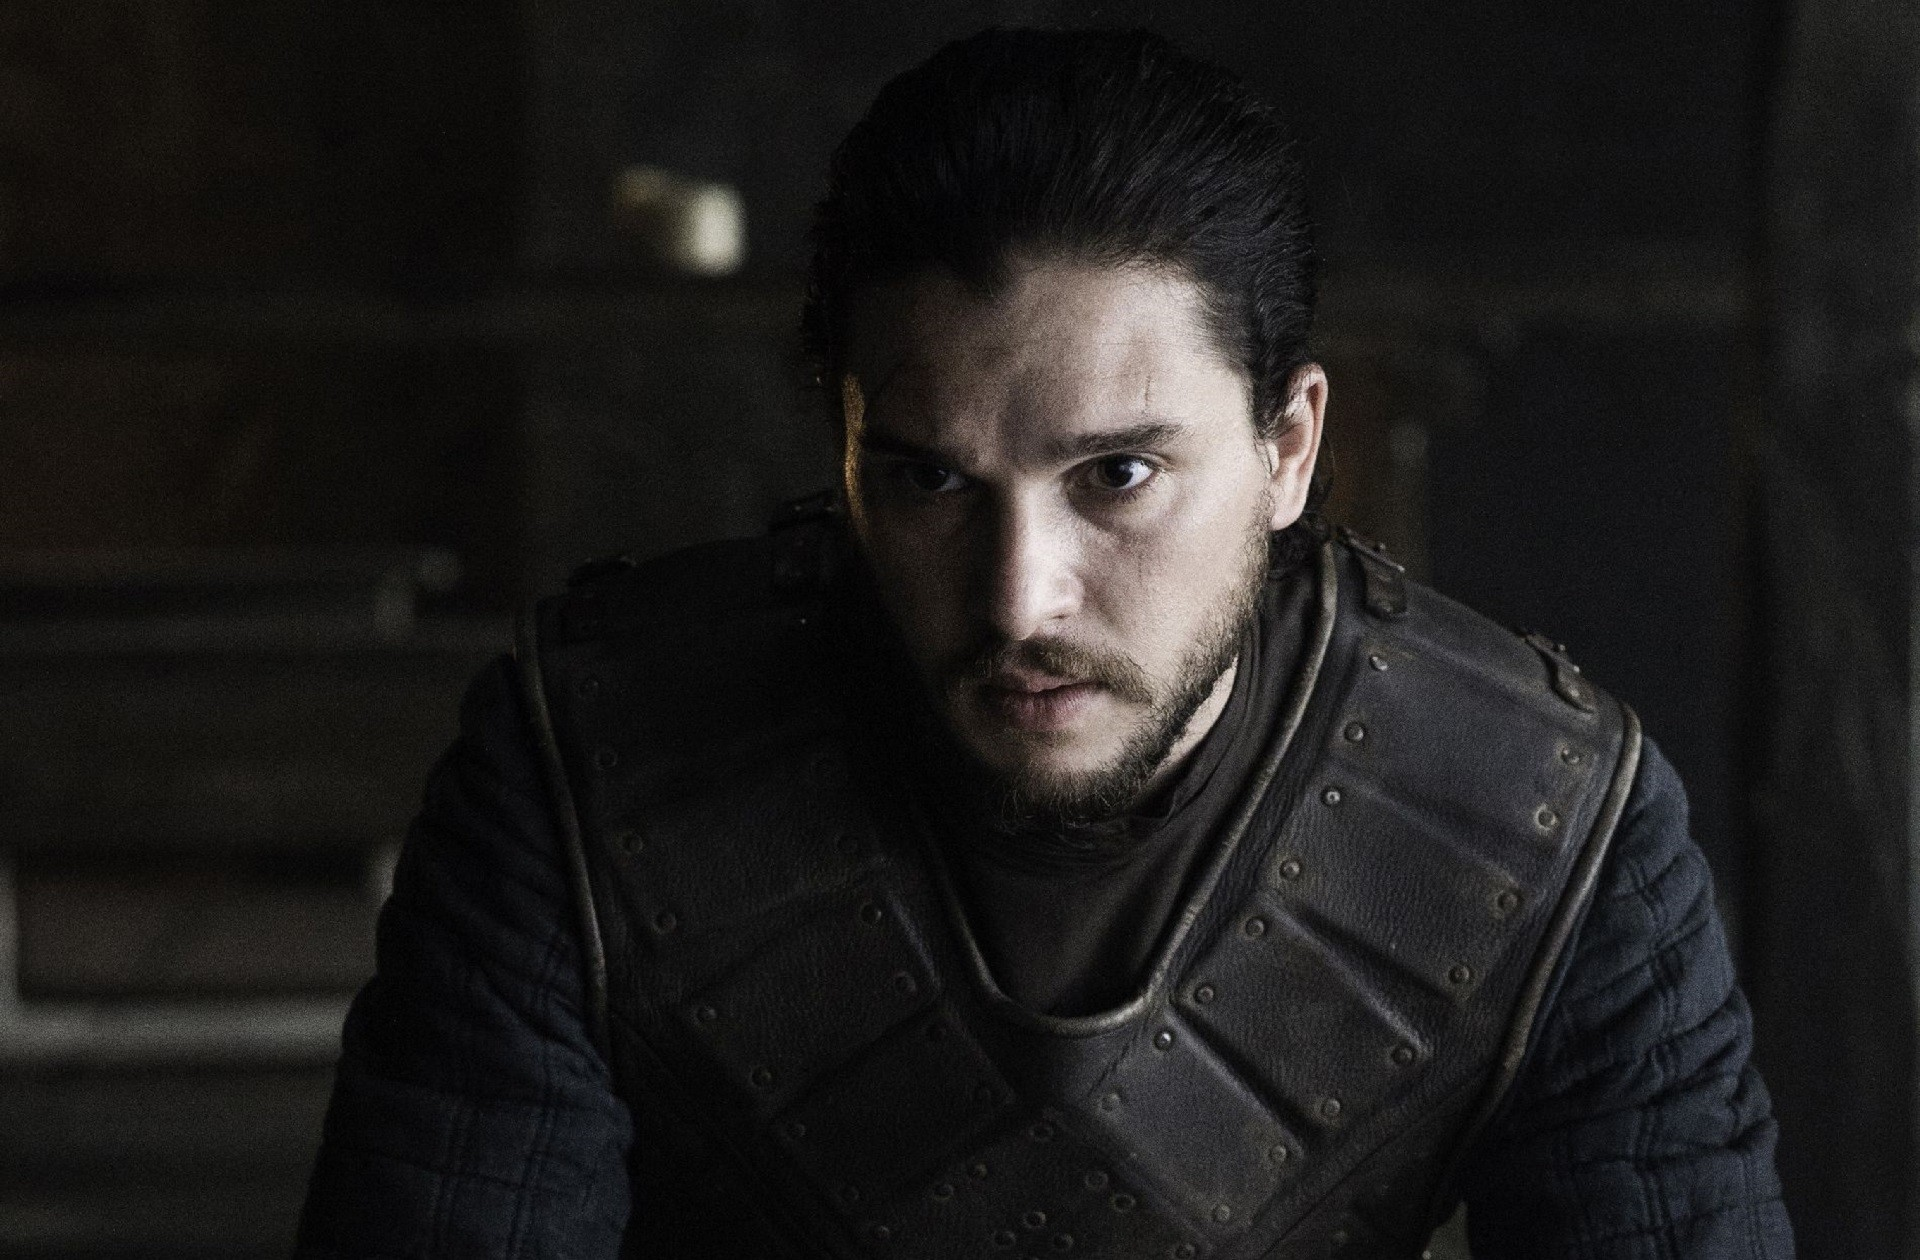 1920x1260 TV Show - Game Of Thrones Jon Snow Kit Harington Wallpaper